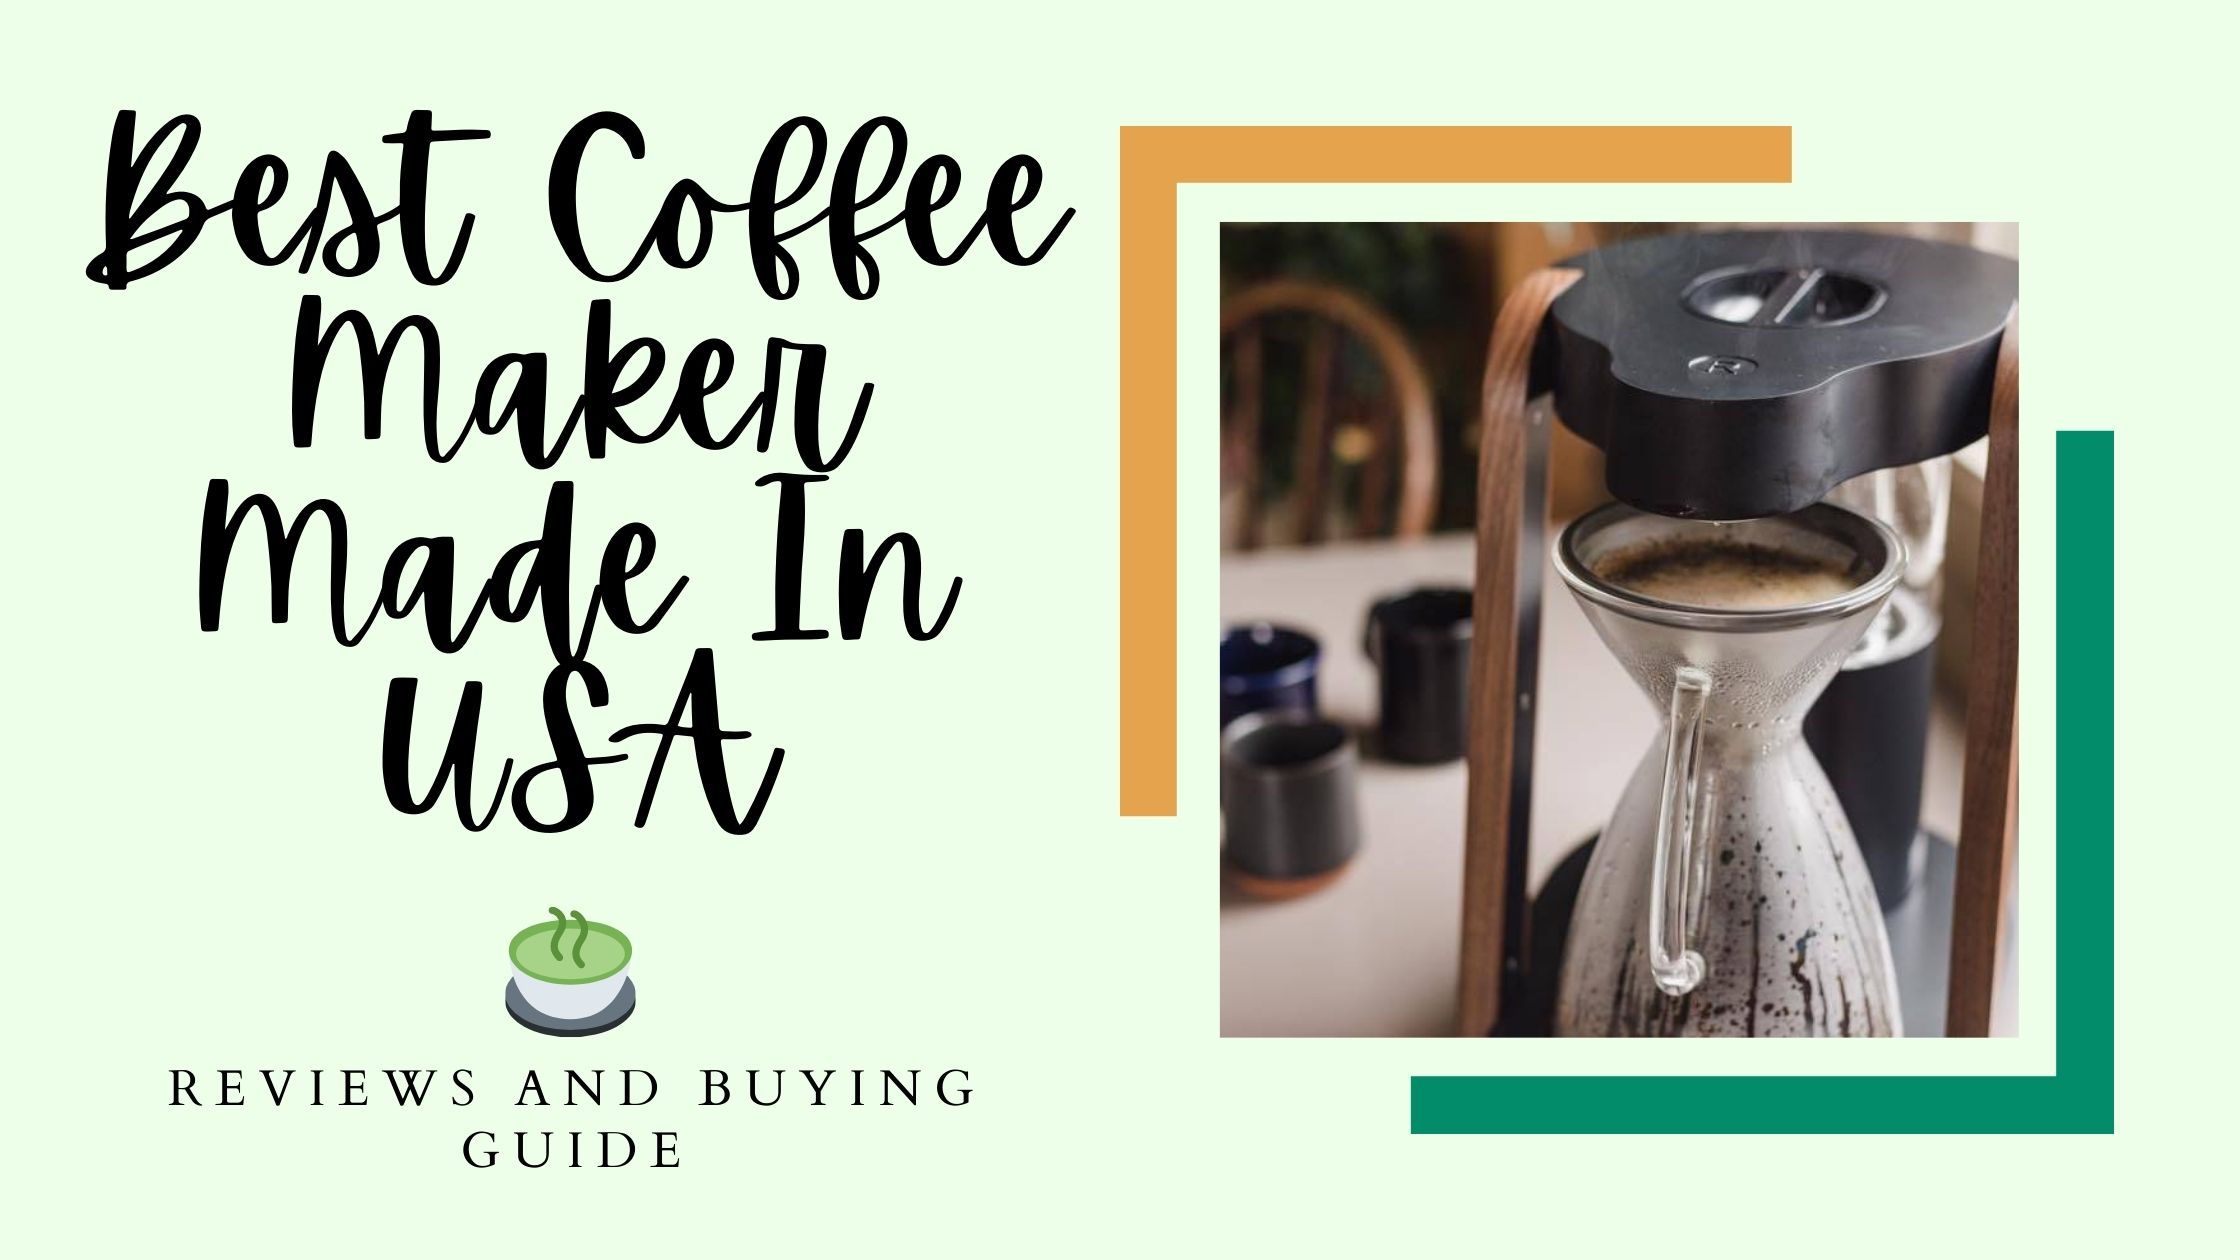 Best Coffee Maker Made In USA